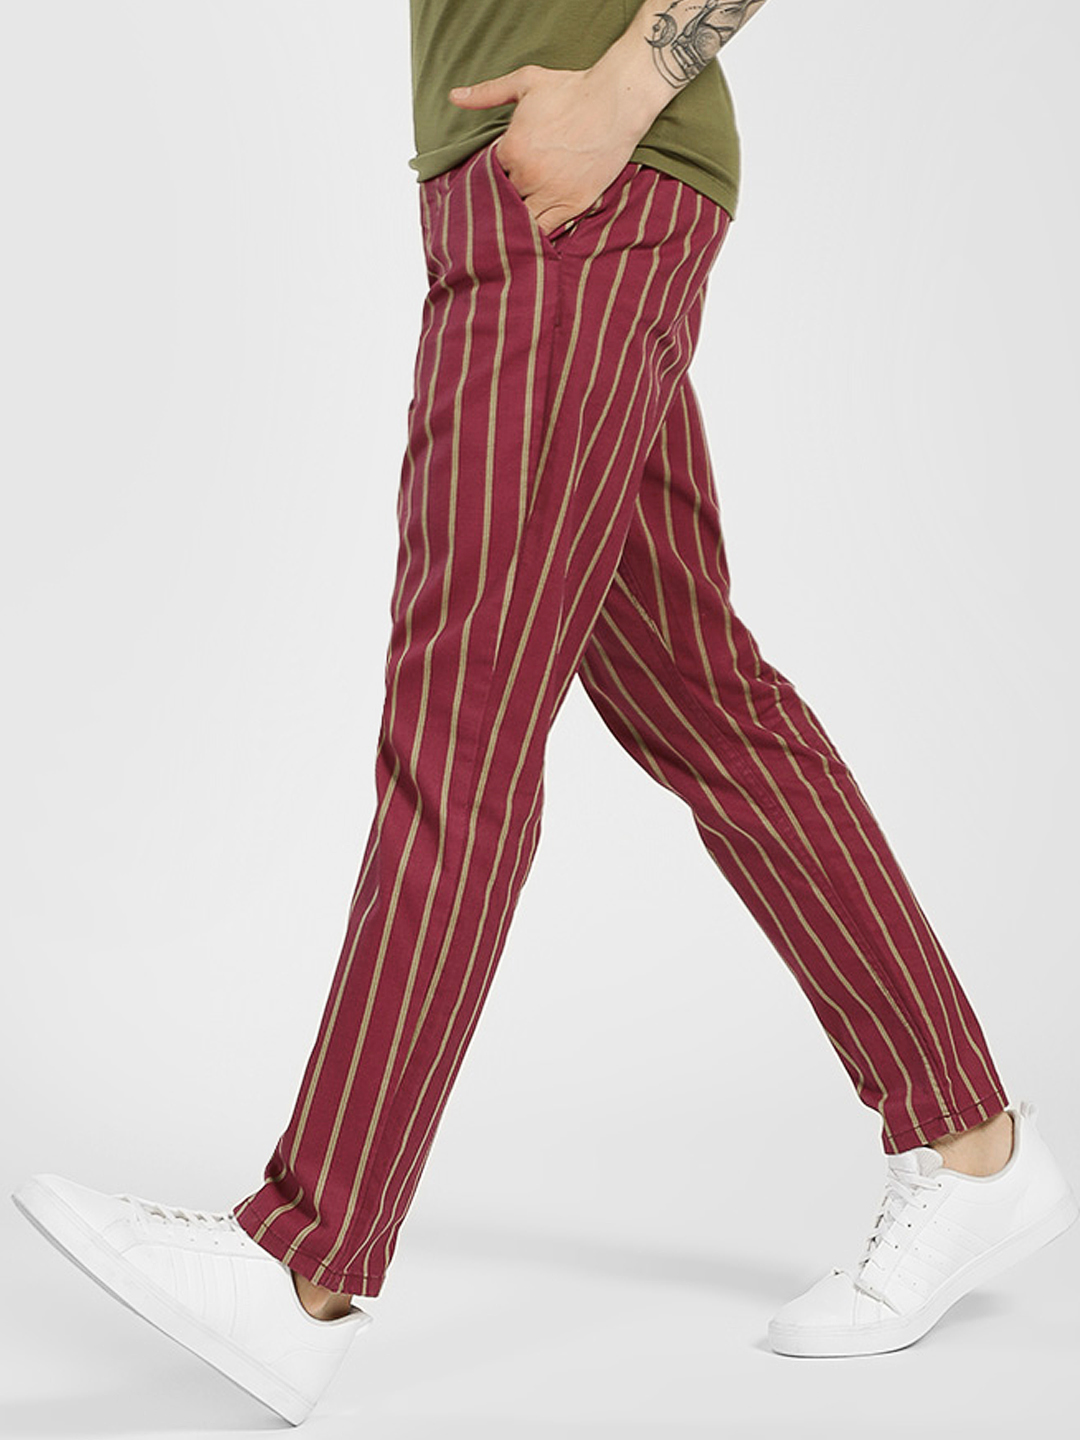 Blue Saint Maroon Vertical Stripe Trousers 1